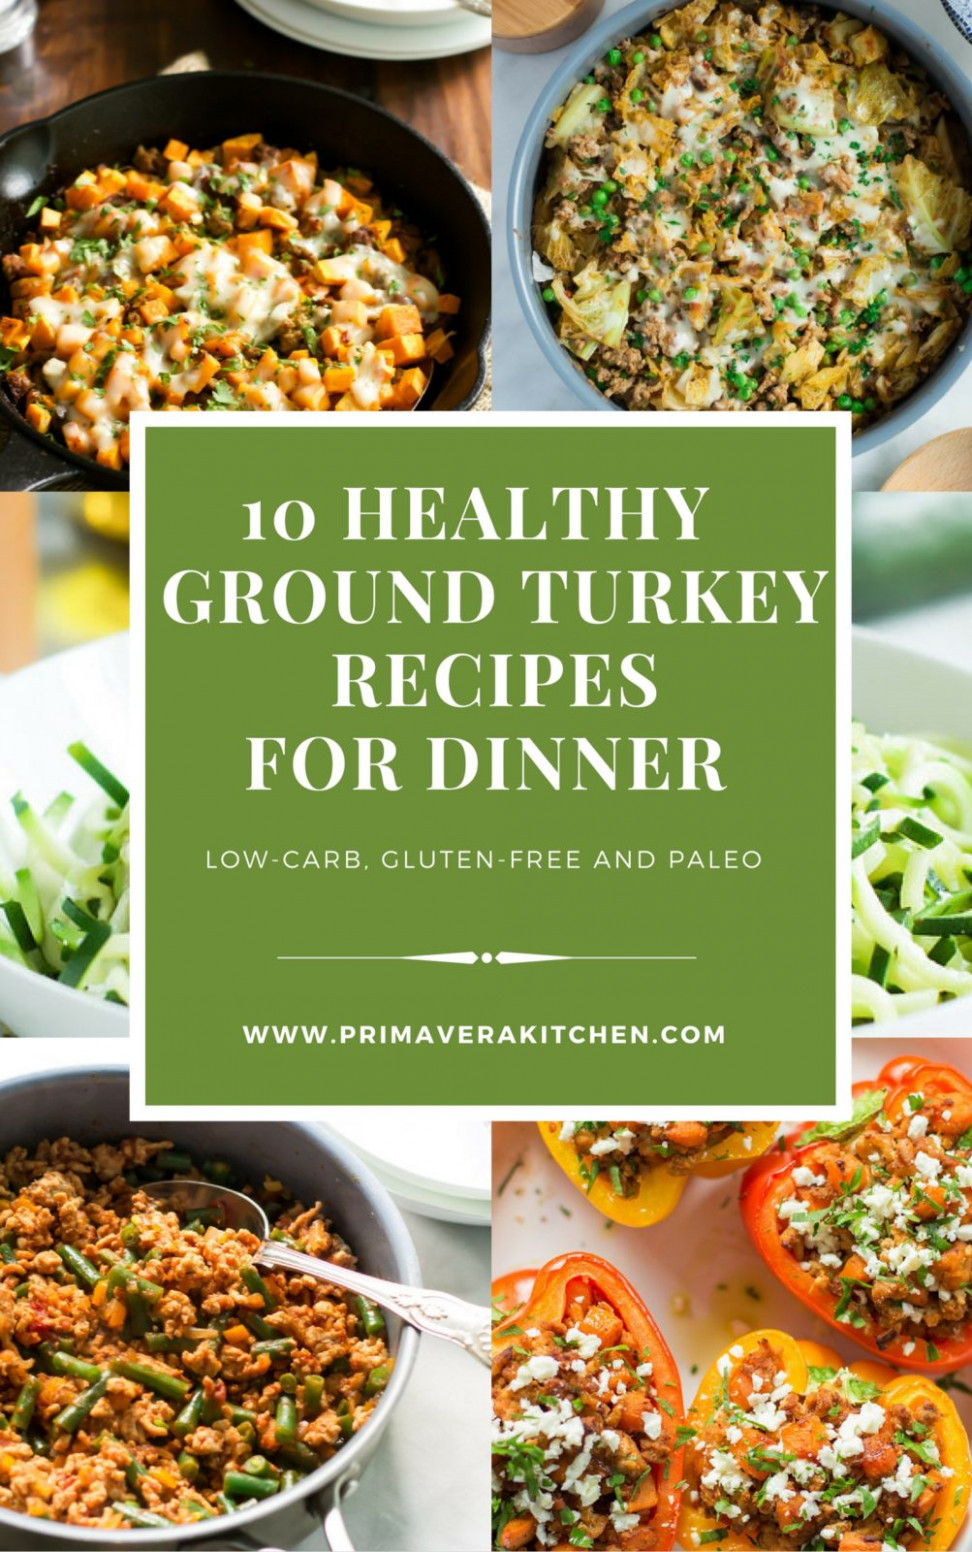 10 Healthy Ground Turkey Recipes for Dinner - Primavera ...